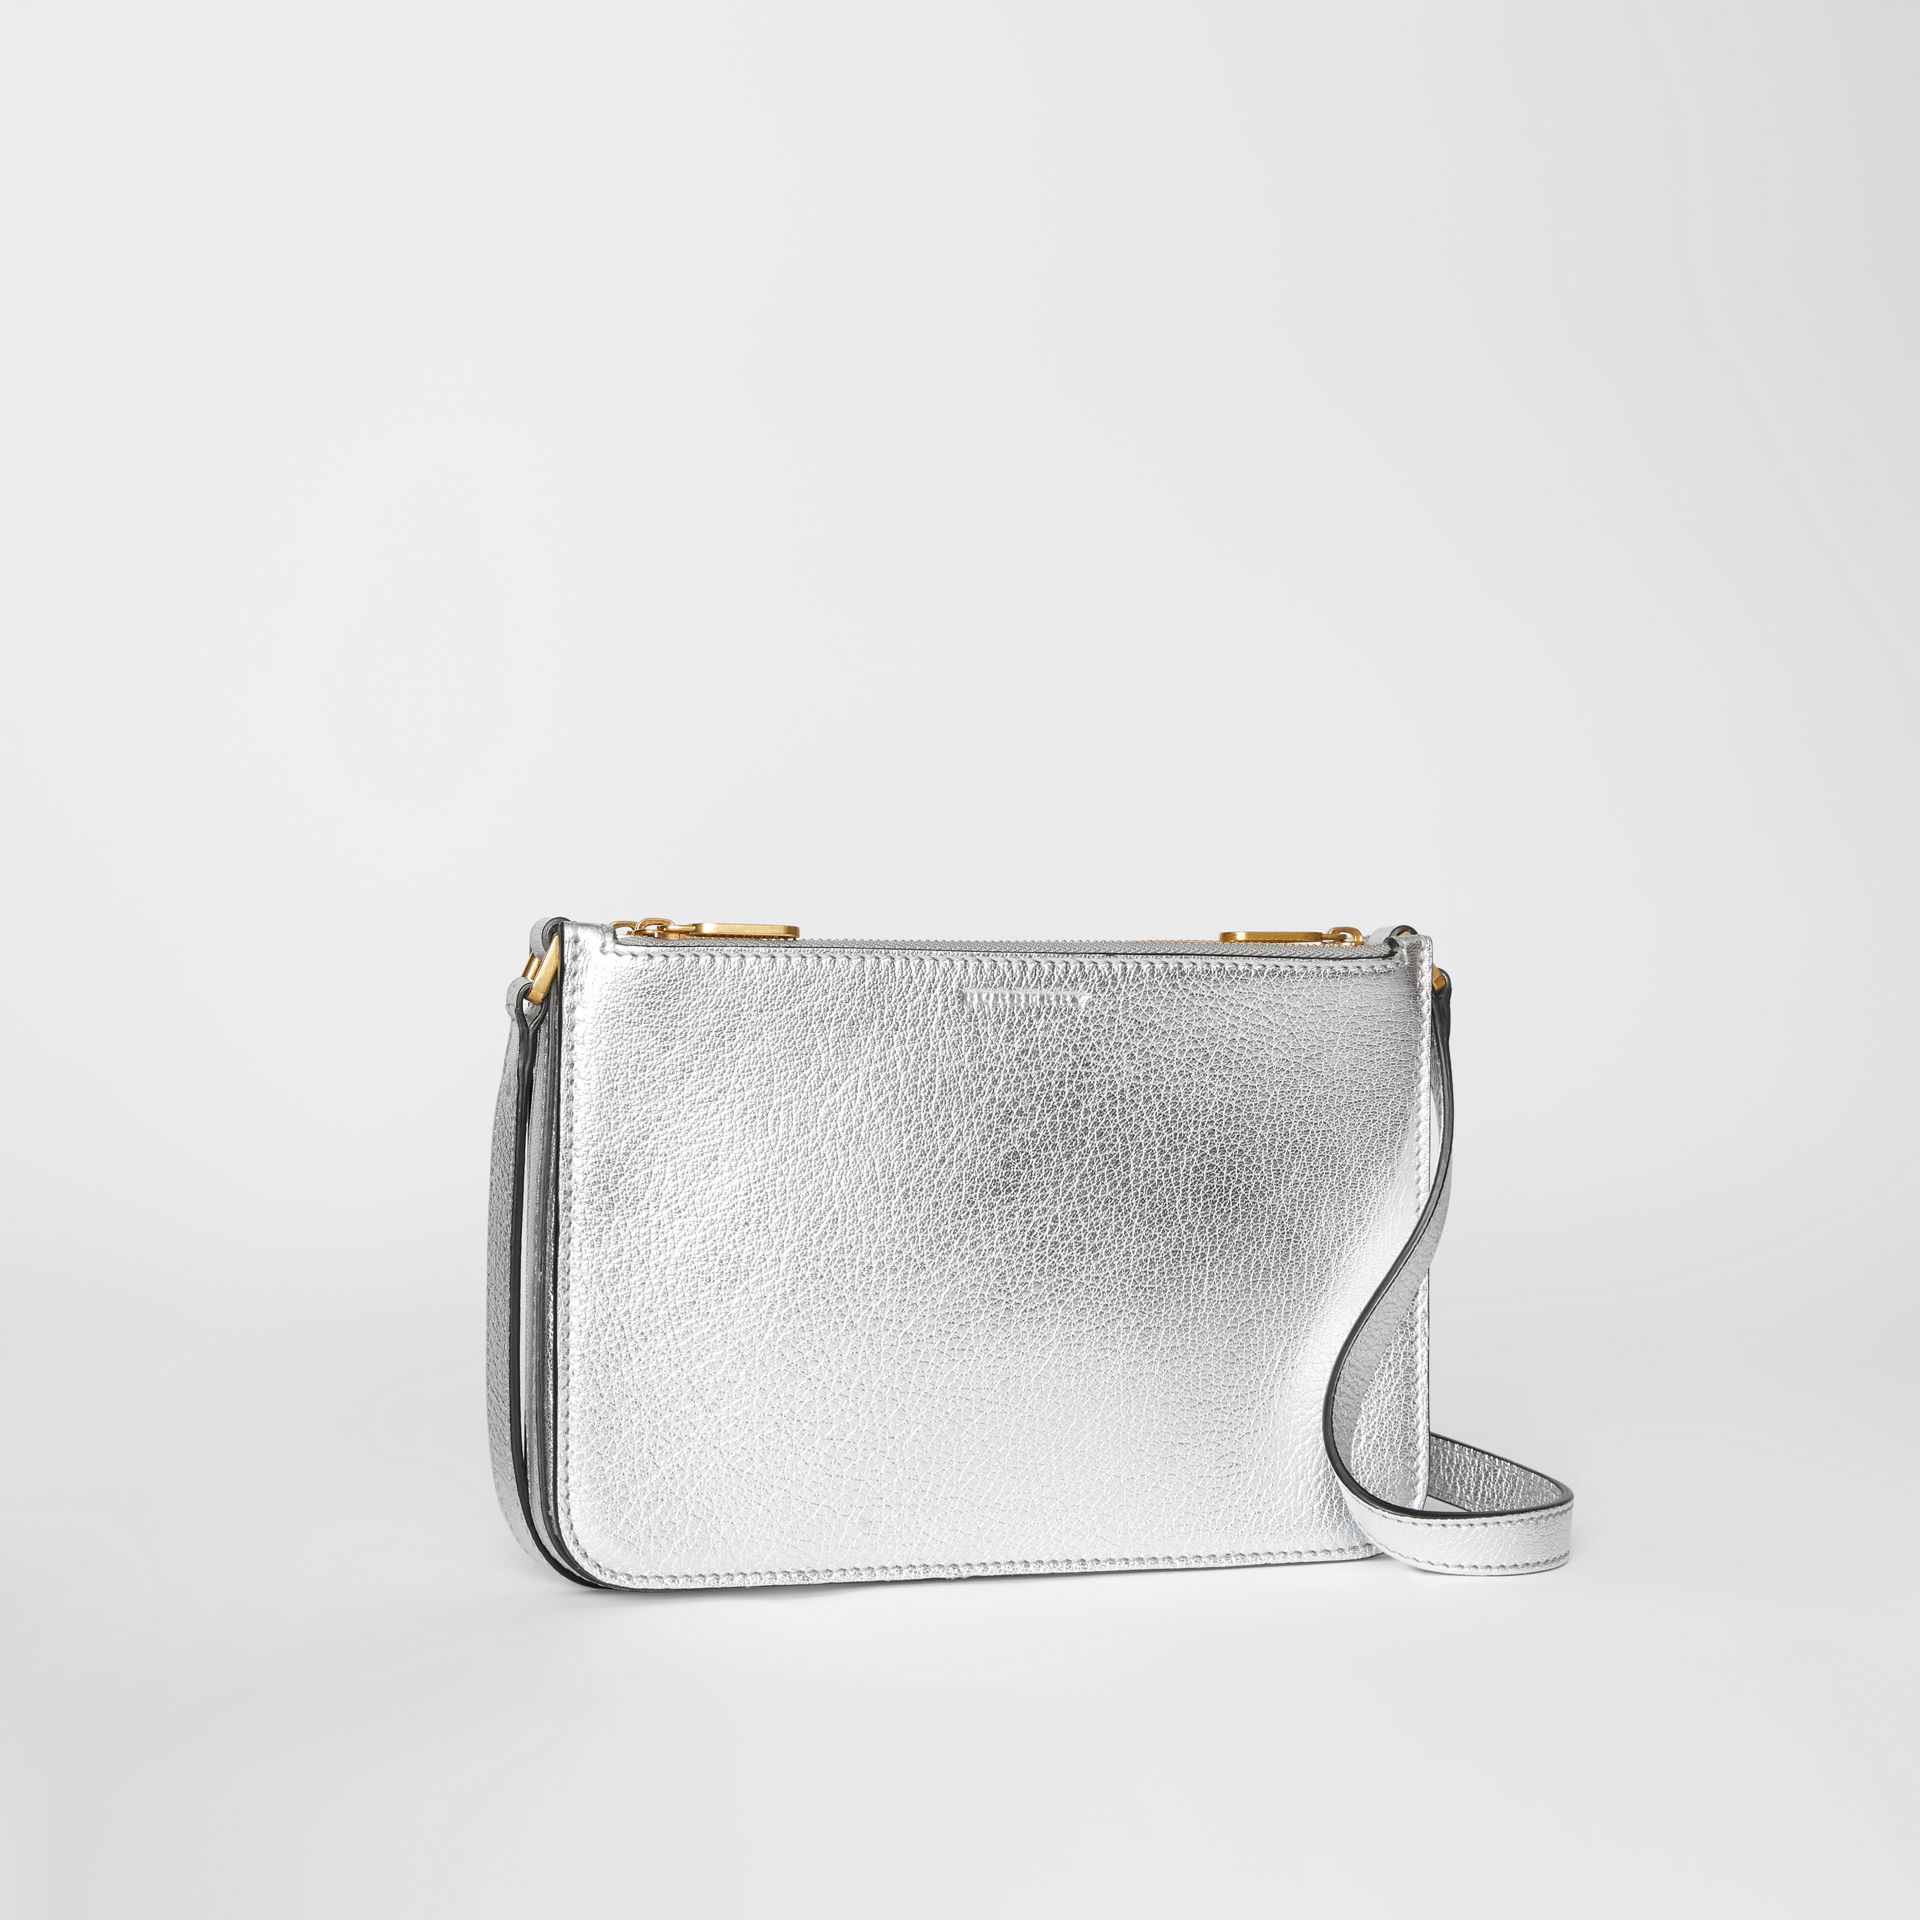 Triple Zip Metallic Leather Crossbody Bag in Silver - Women | Burberry Canada - gallery image 6